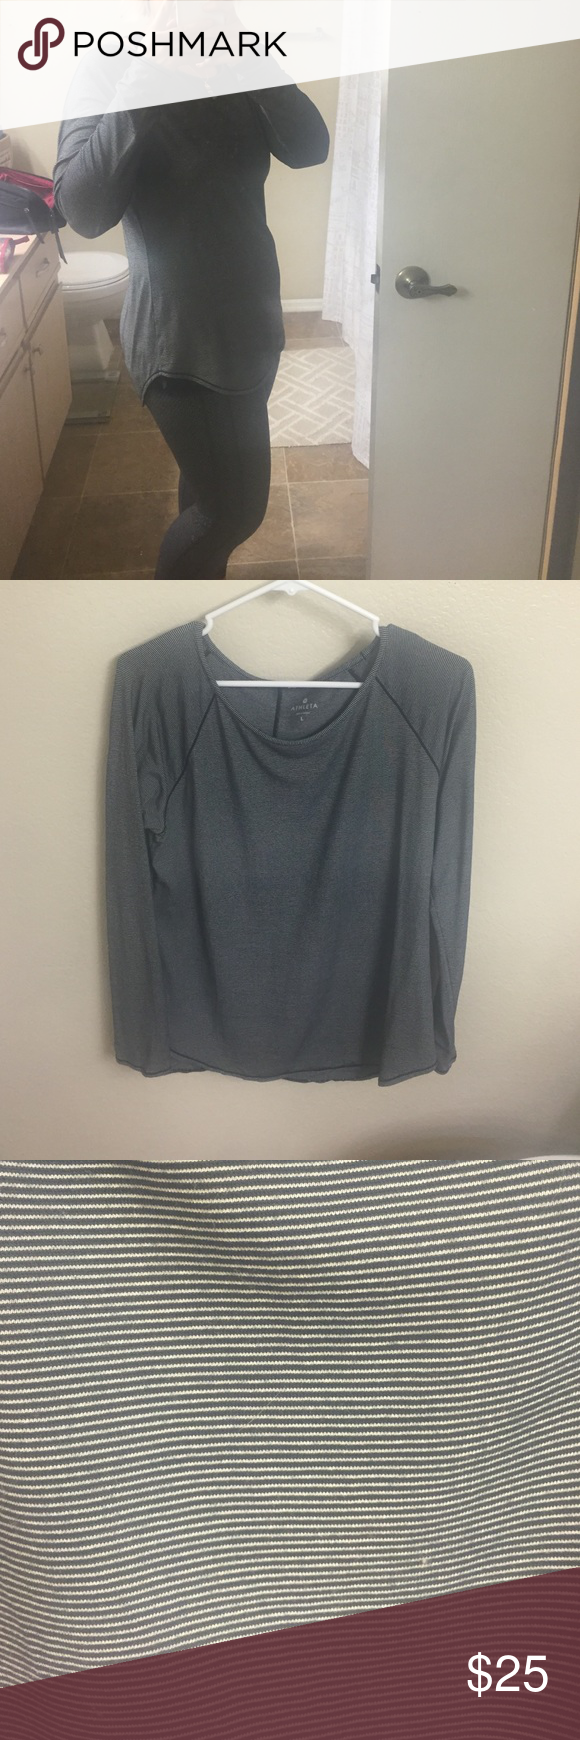 Athleta micro stripe shanti top My favorite light weight pull over top to wear with leggings or jeans. Athleta Tops